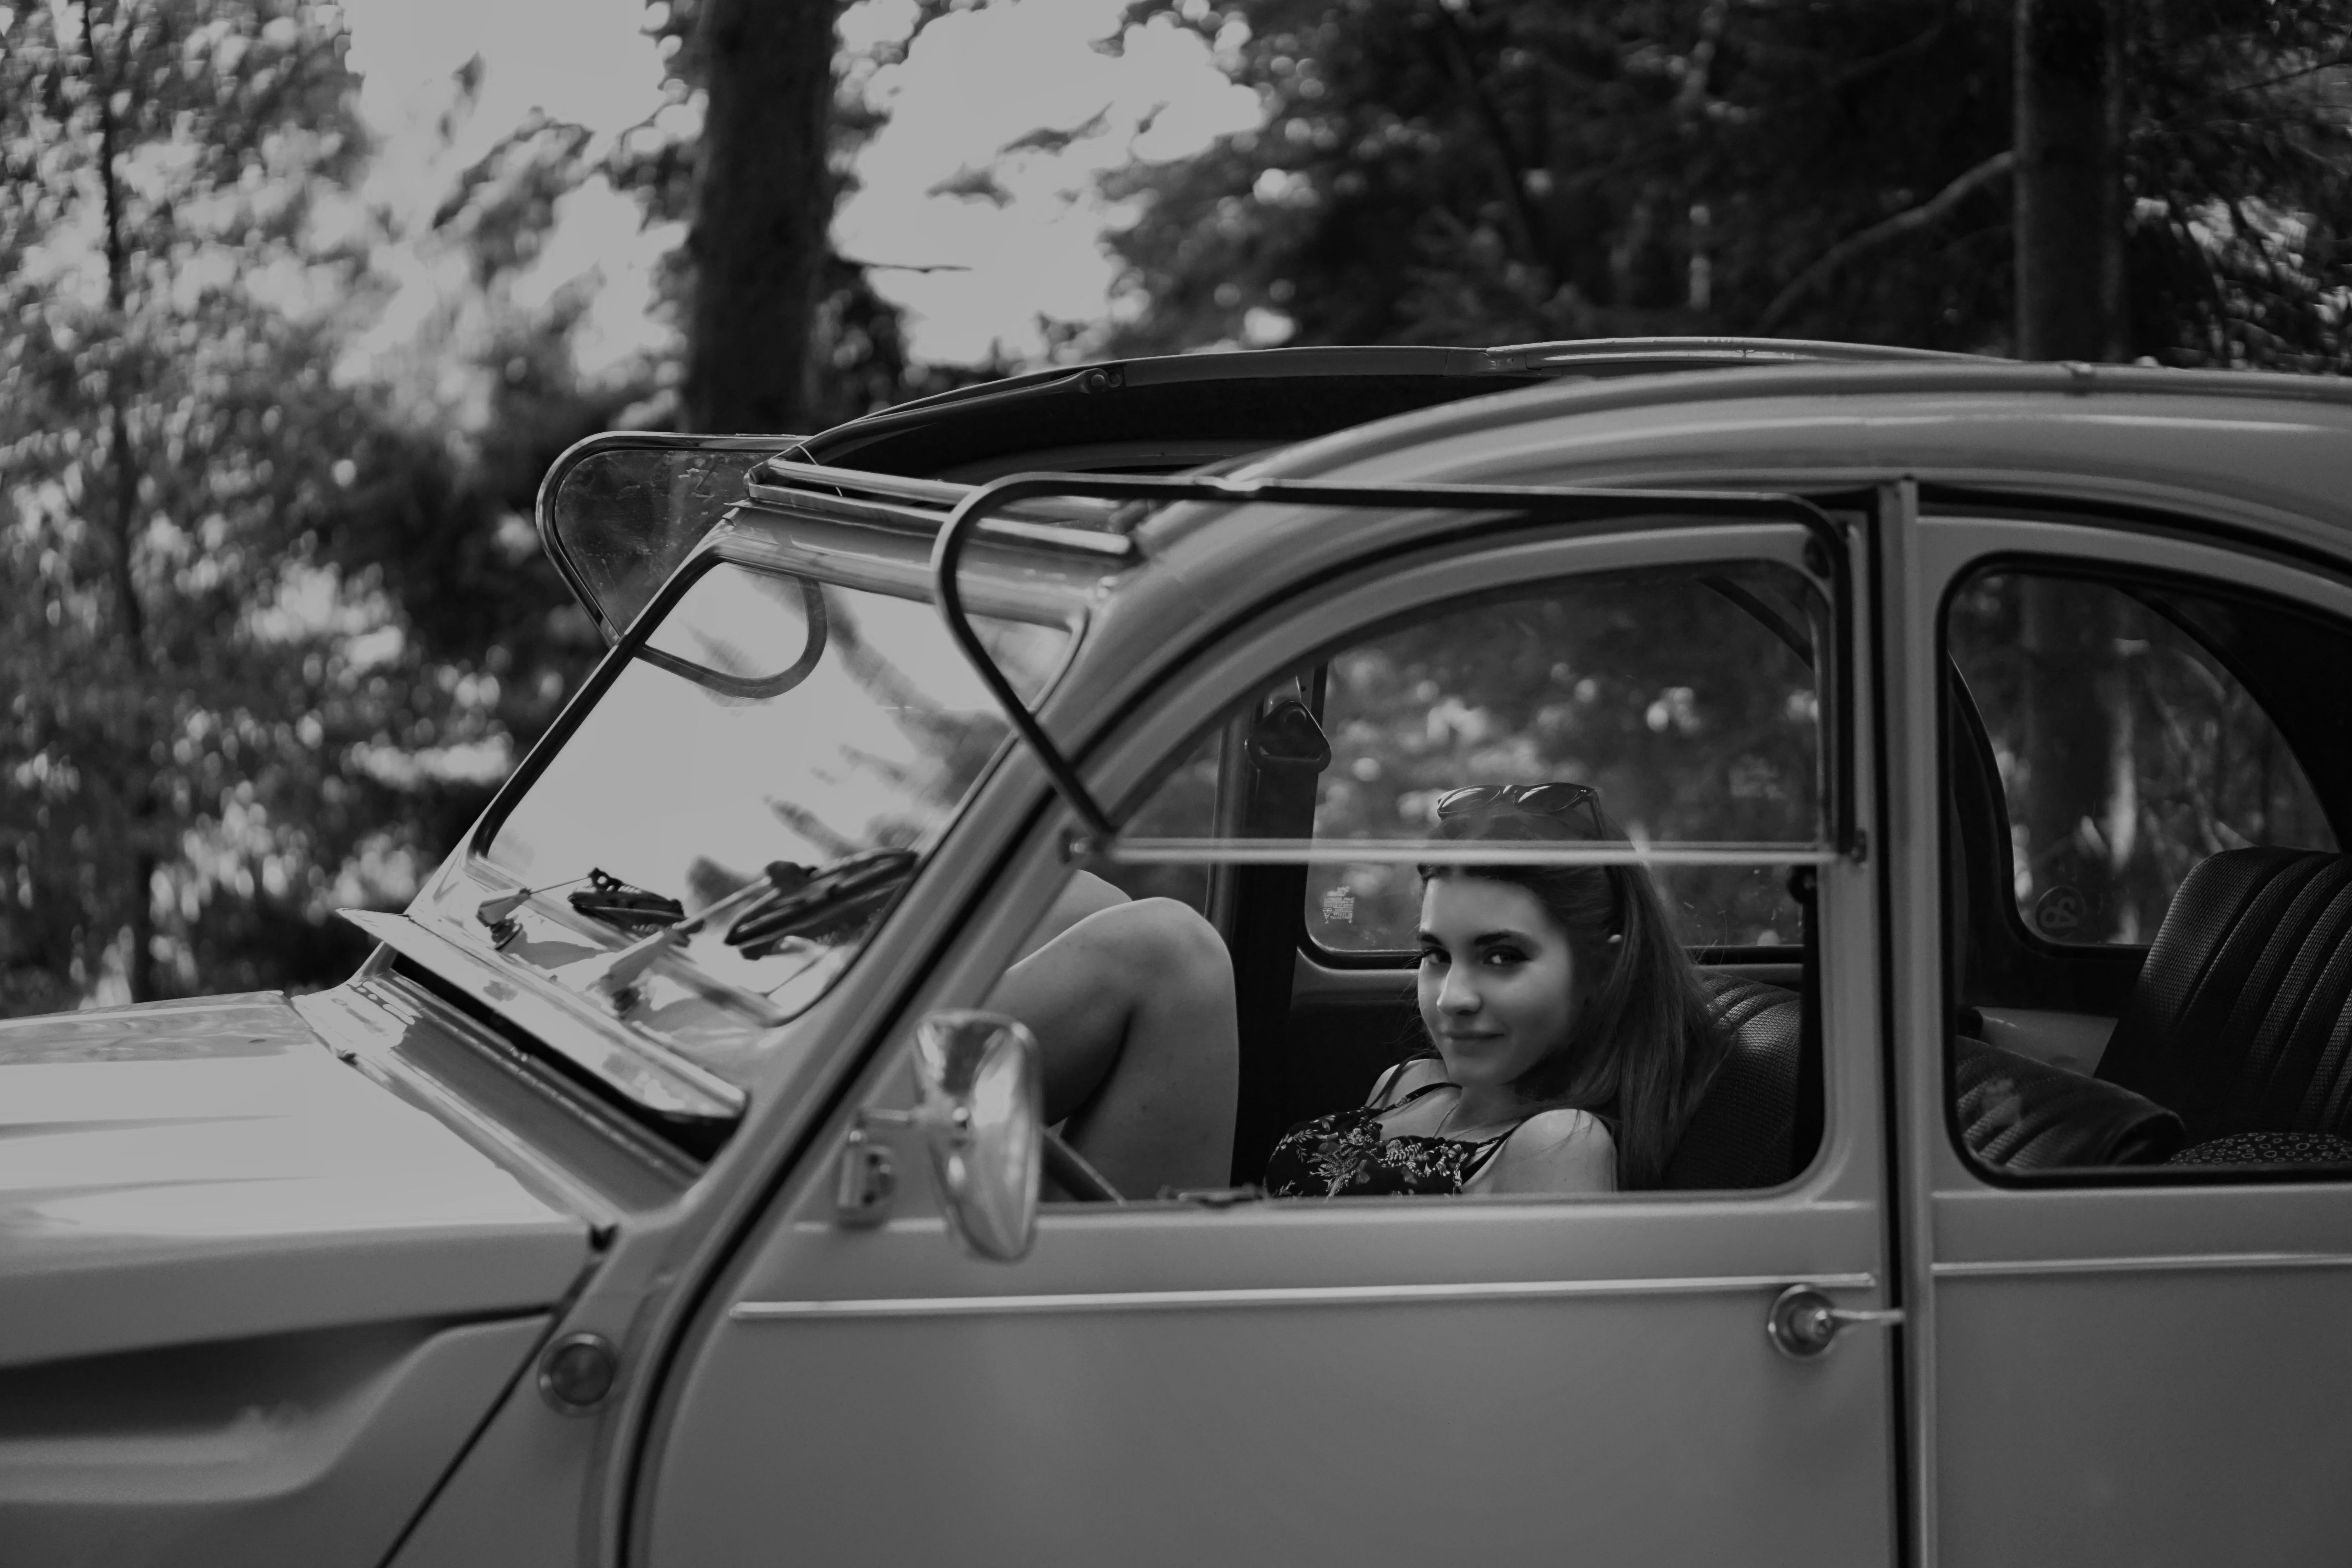 Grayscale Photo Of Woman Inside Classic Car